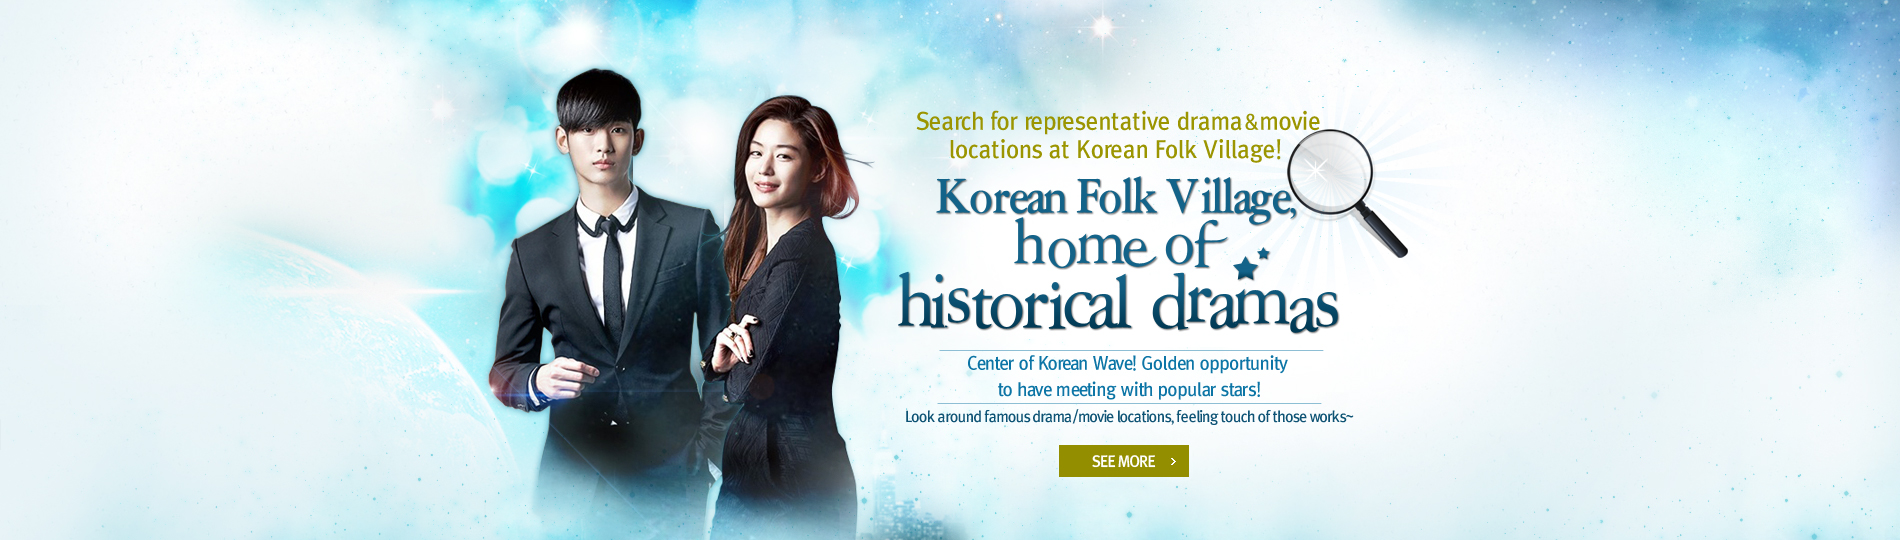 Korean Folk Village, home of historical dramas